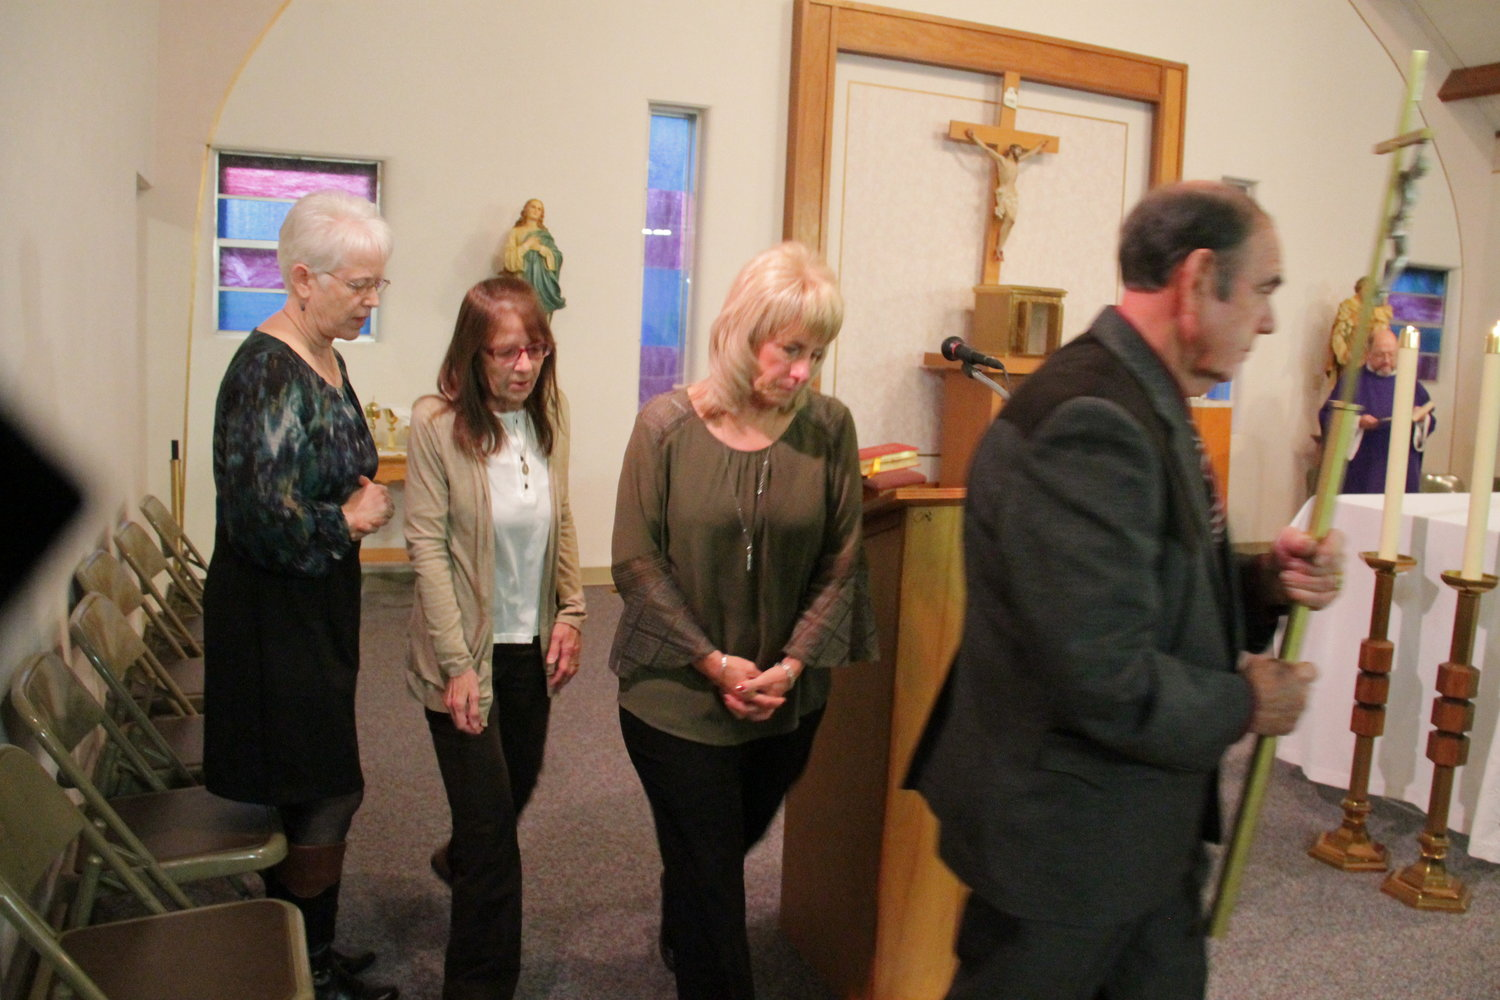 Members of the St. Martha pastoral council in Wayland process out of St. Martha Church at the end of Mass on Dec. 9.